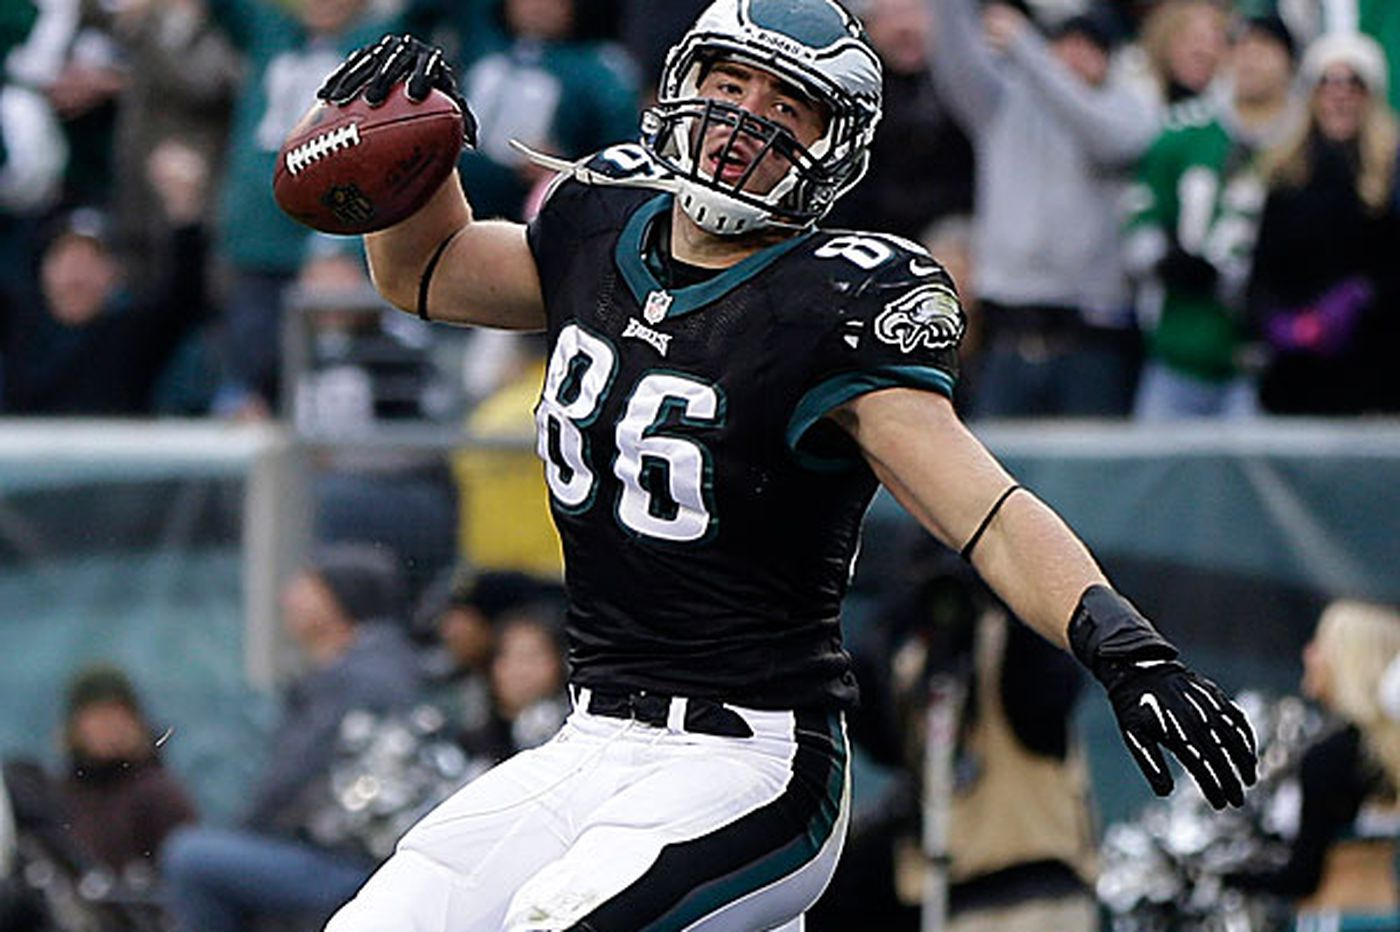 Ertz likely to benefit from DeSean's absence